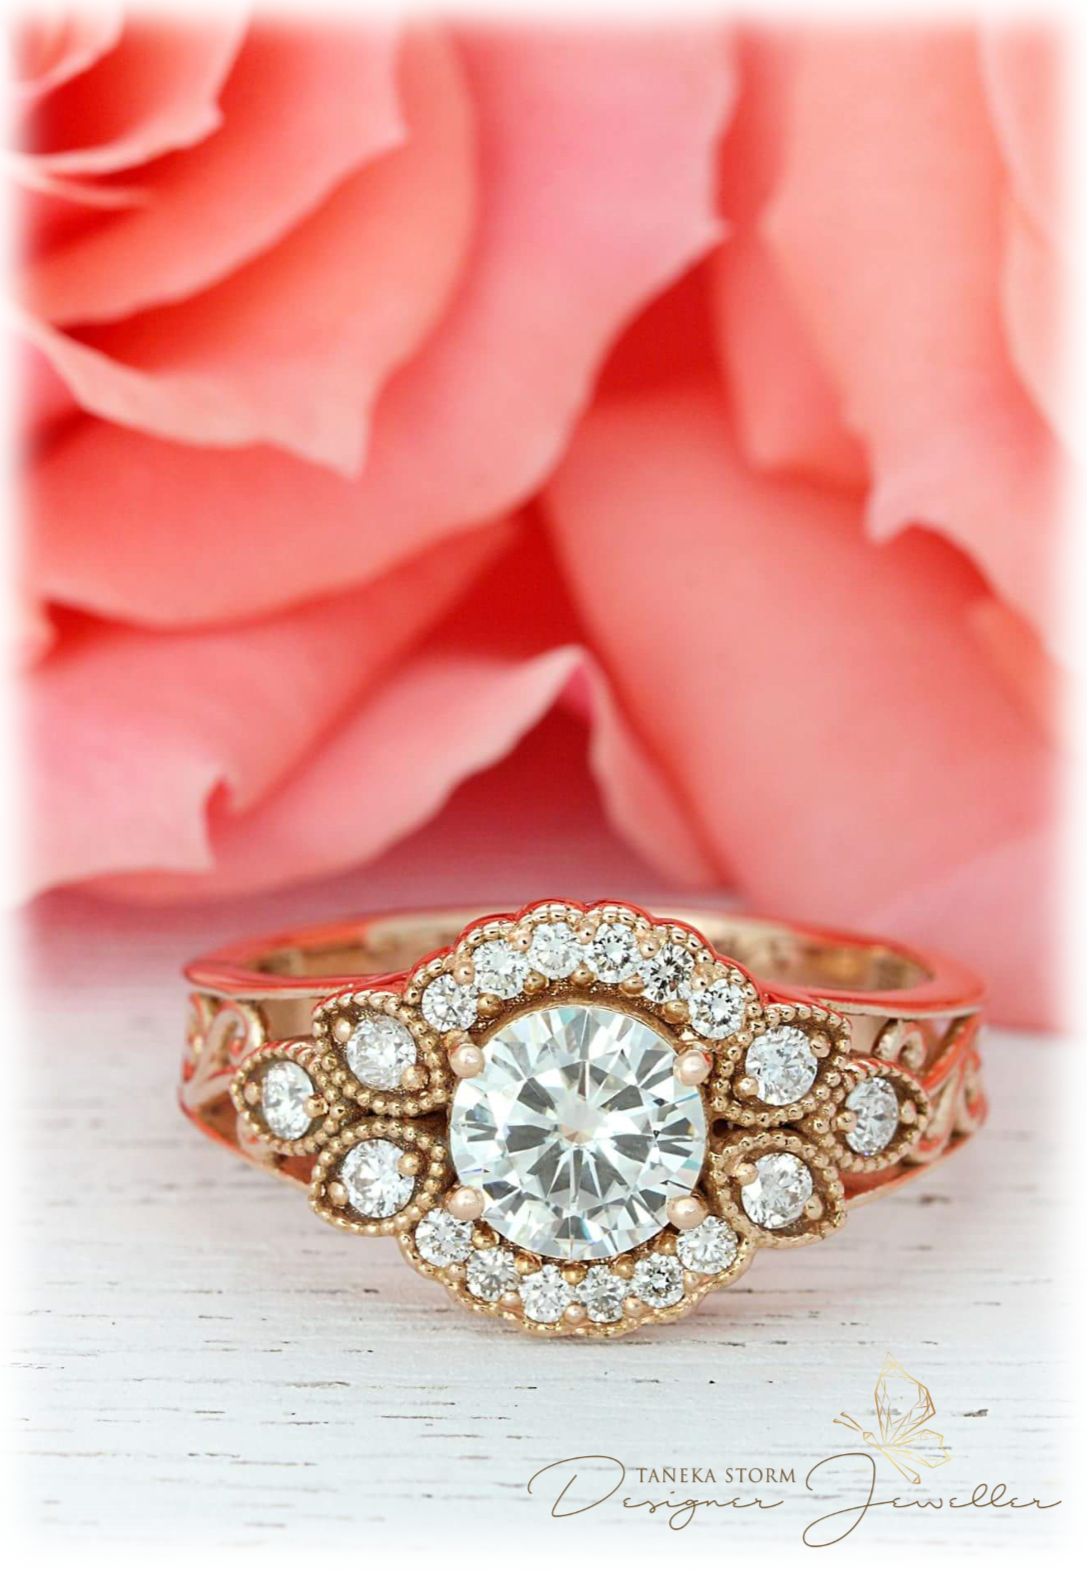 Romance in full bloom. | Jewellery by Taneka Storm | Pinterest